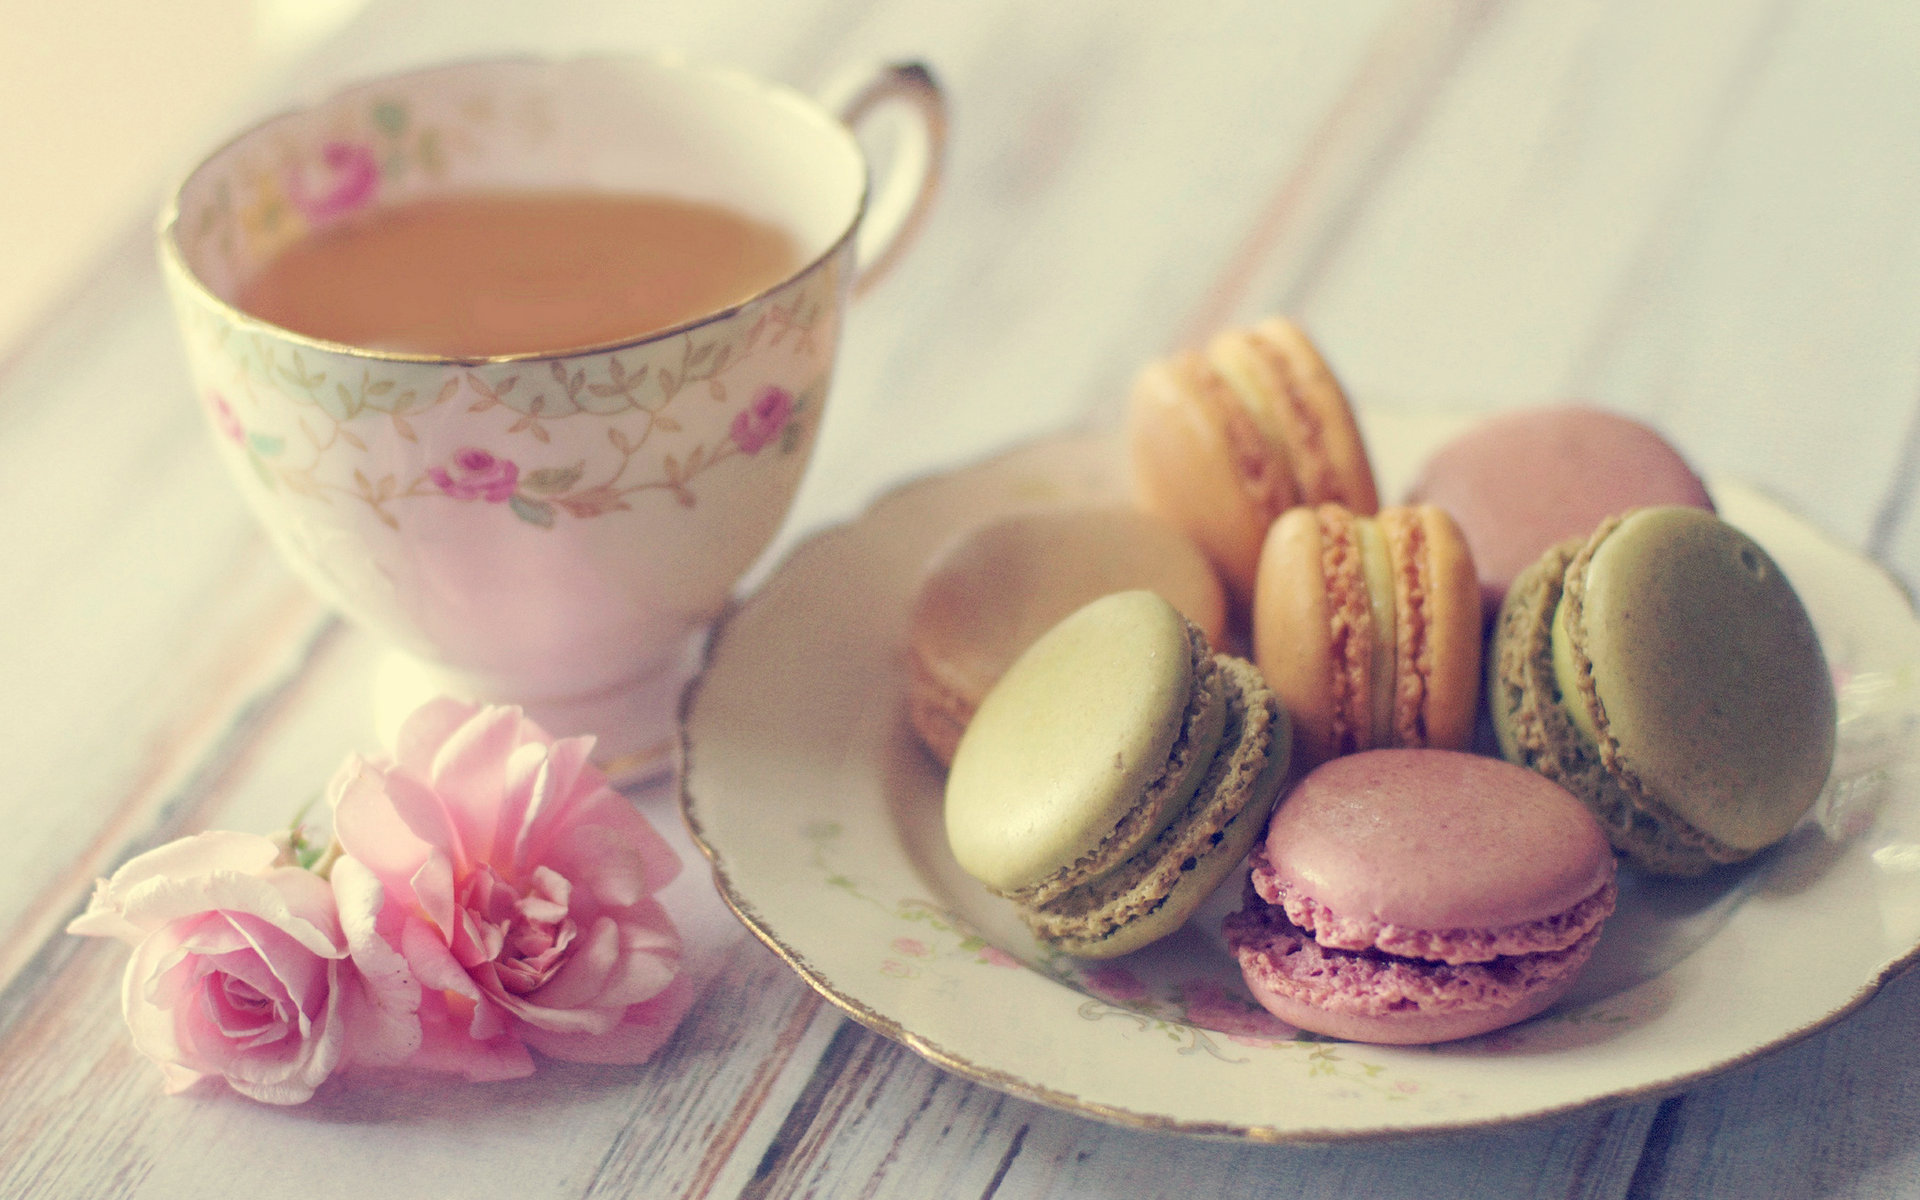 Cute Macaroon and Tea